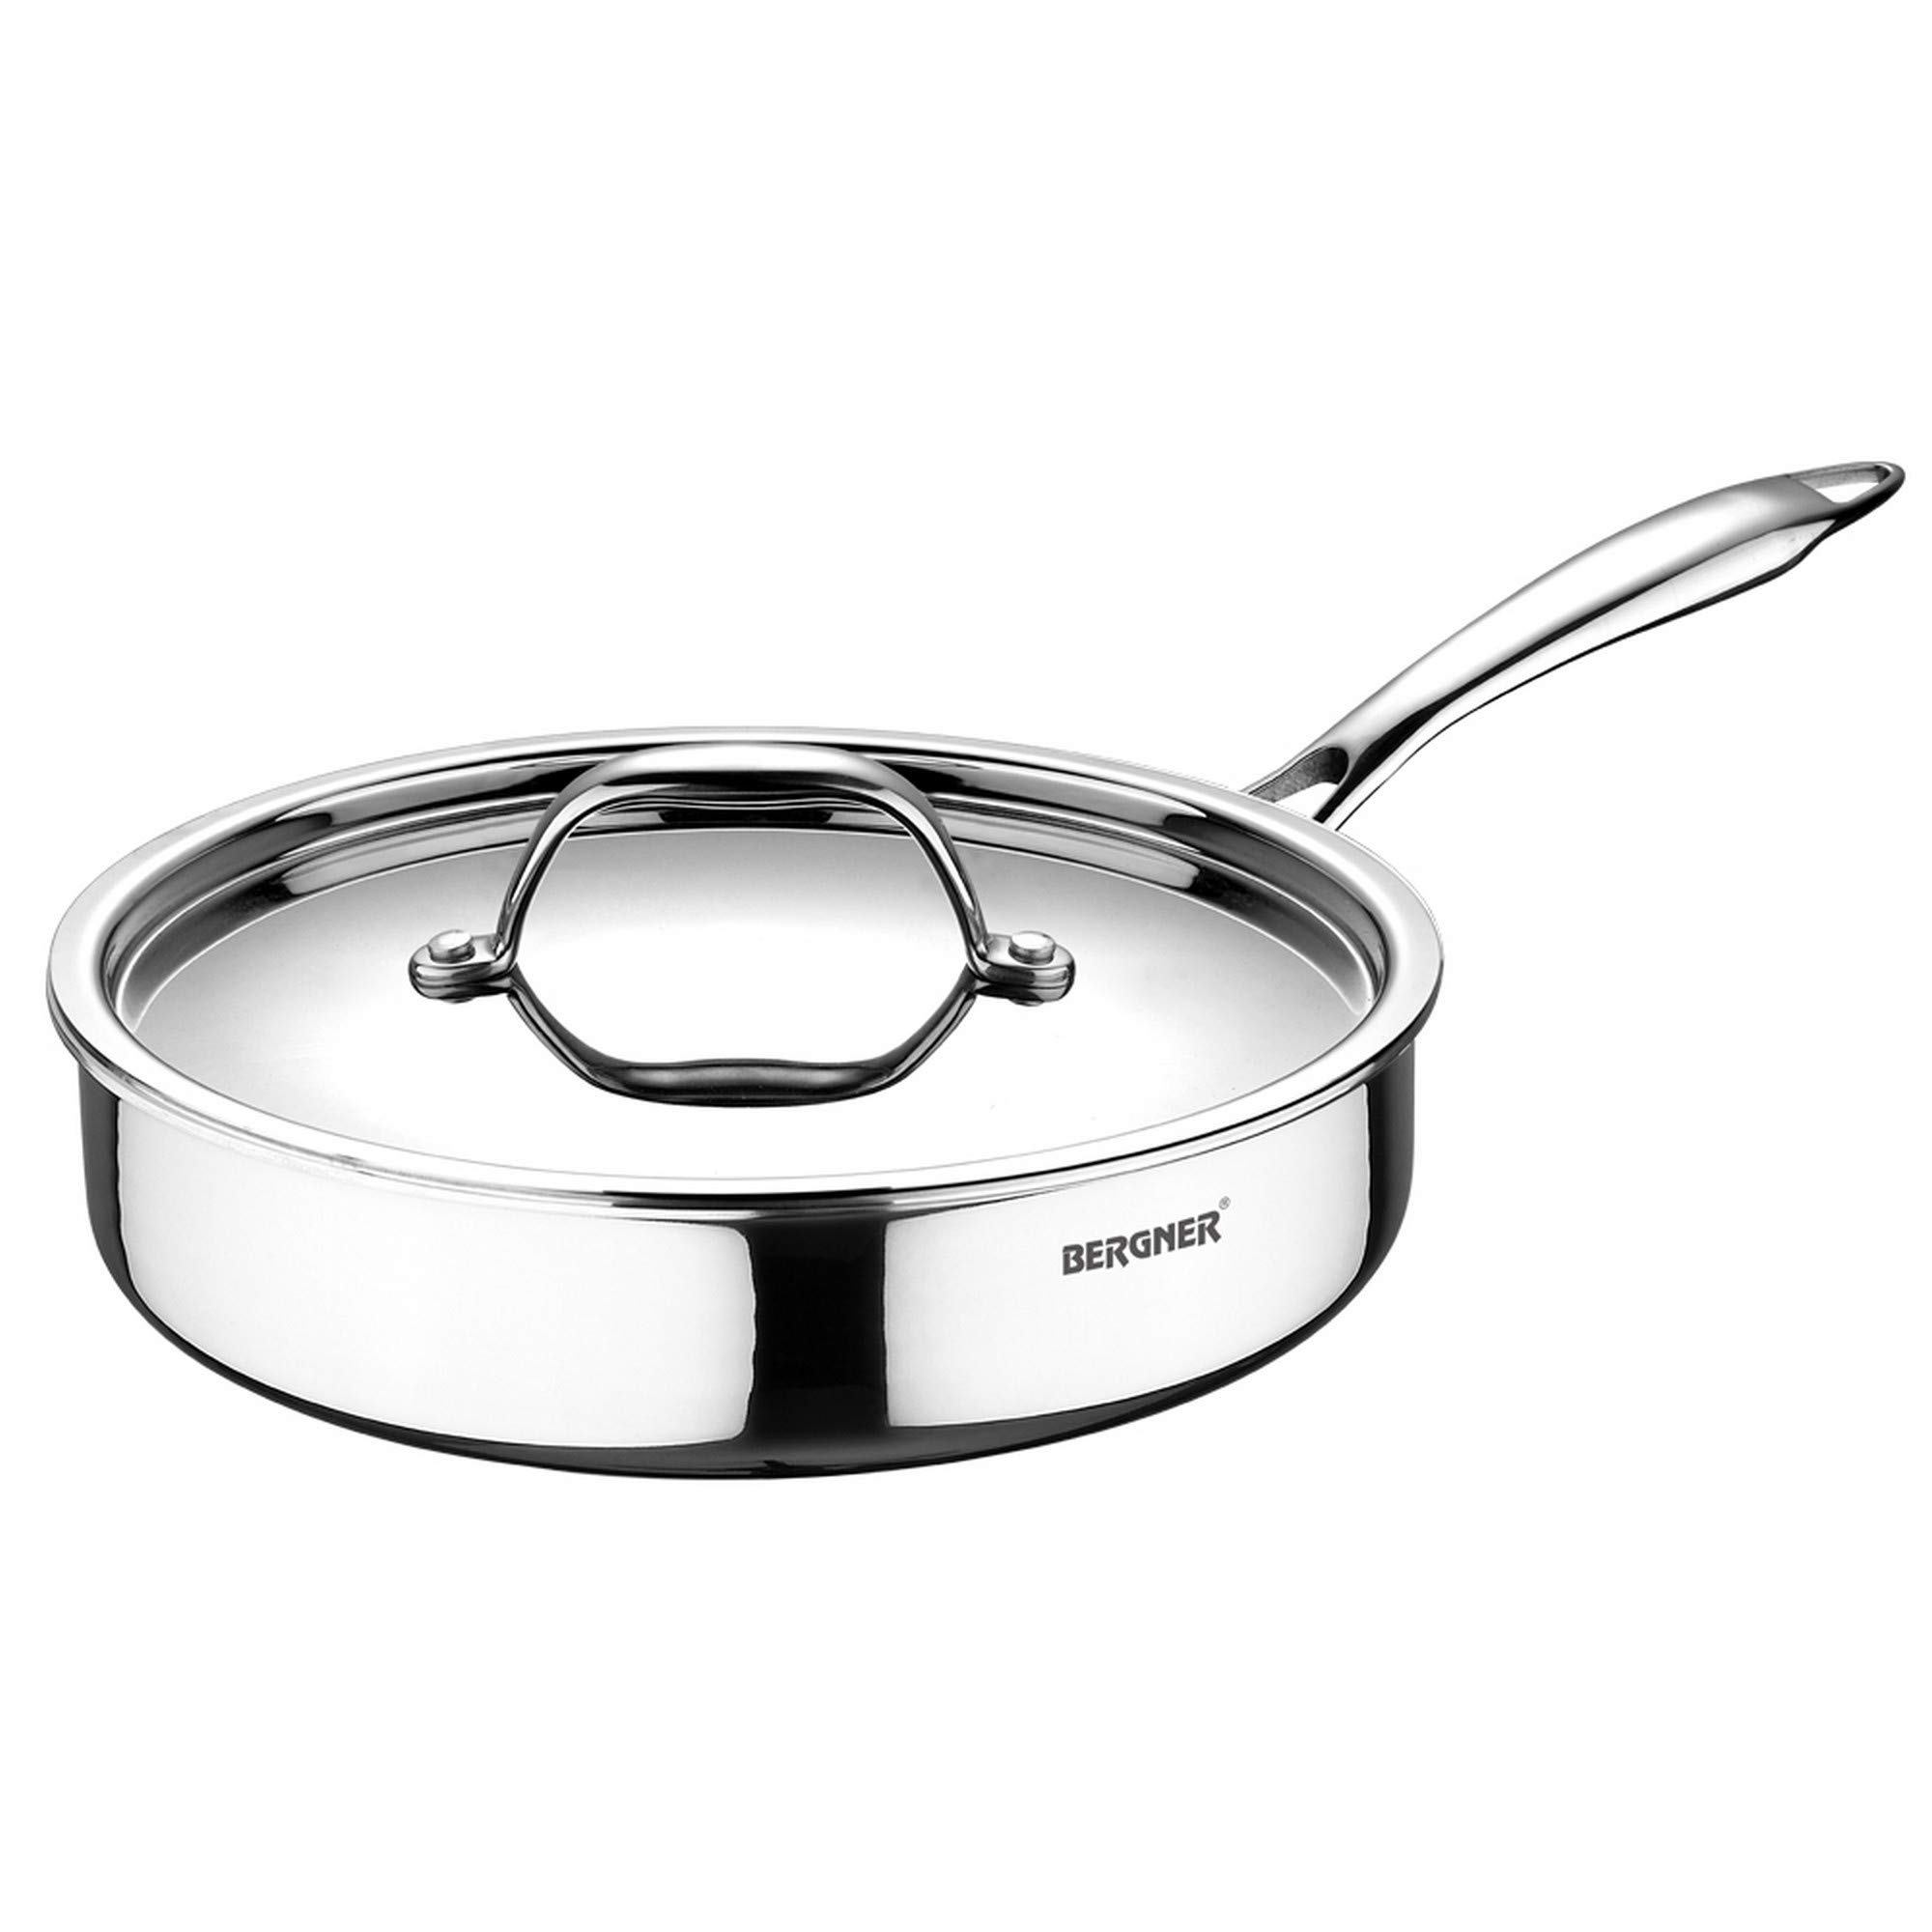 BERGNER Argent Triply Stainless Steel Sautepan with Stainless Steel Lid, 26 cm, 3.1 Litres, Induction Base, Silver